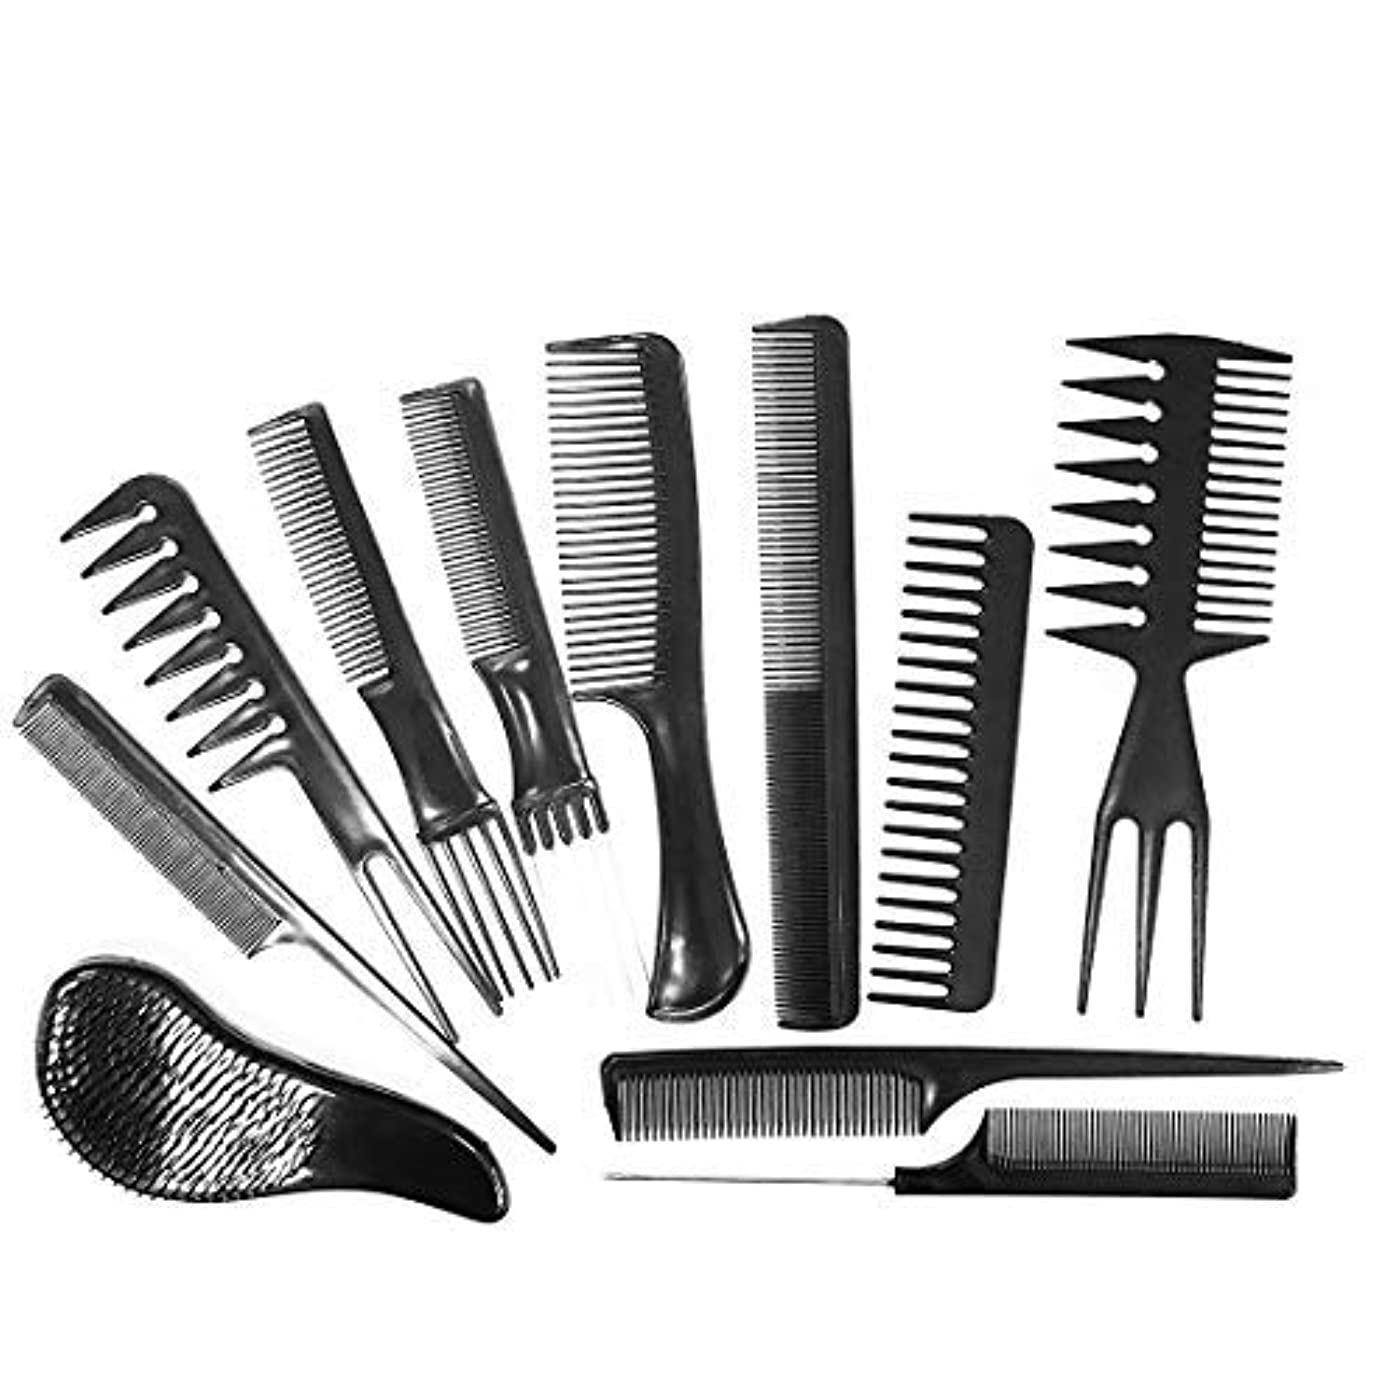 クランプ貫入他の場所Daimay Professional Hair Styling Comb Set Hair Styling Clips Salon Hair Styling Barbers Comb Set Variety Pack...